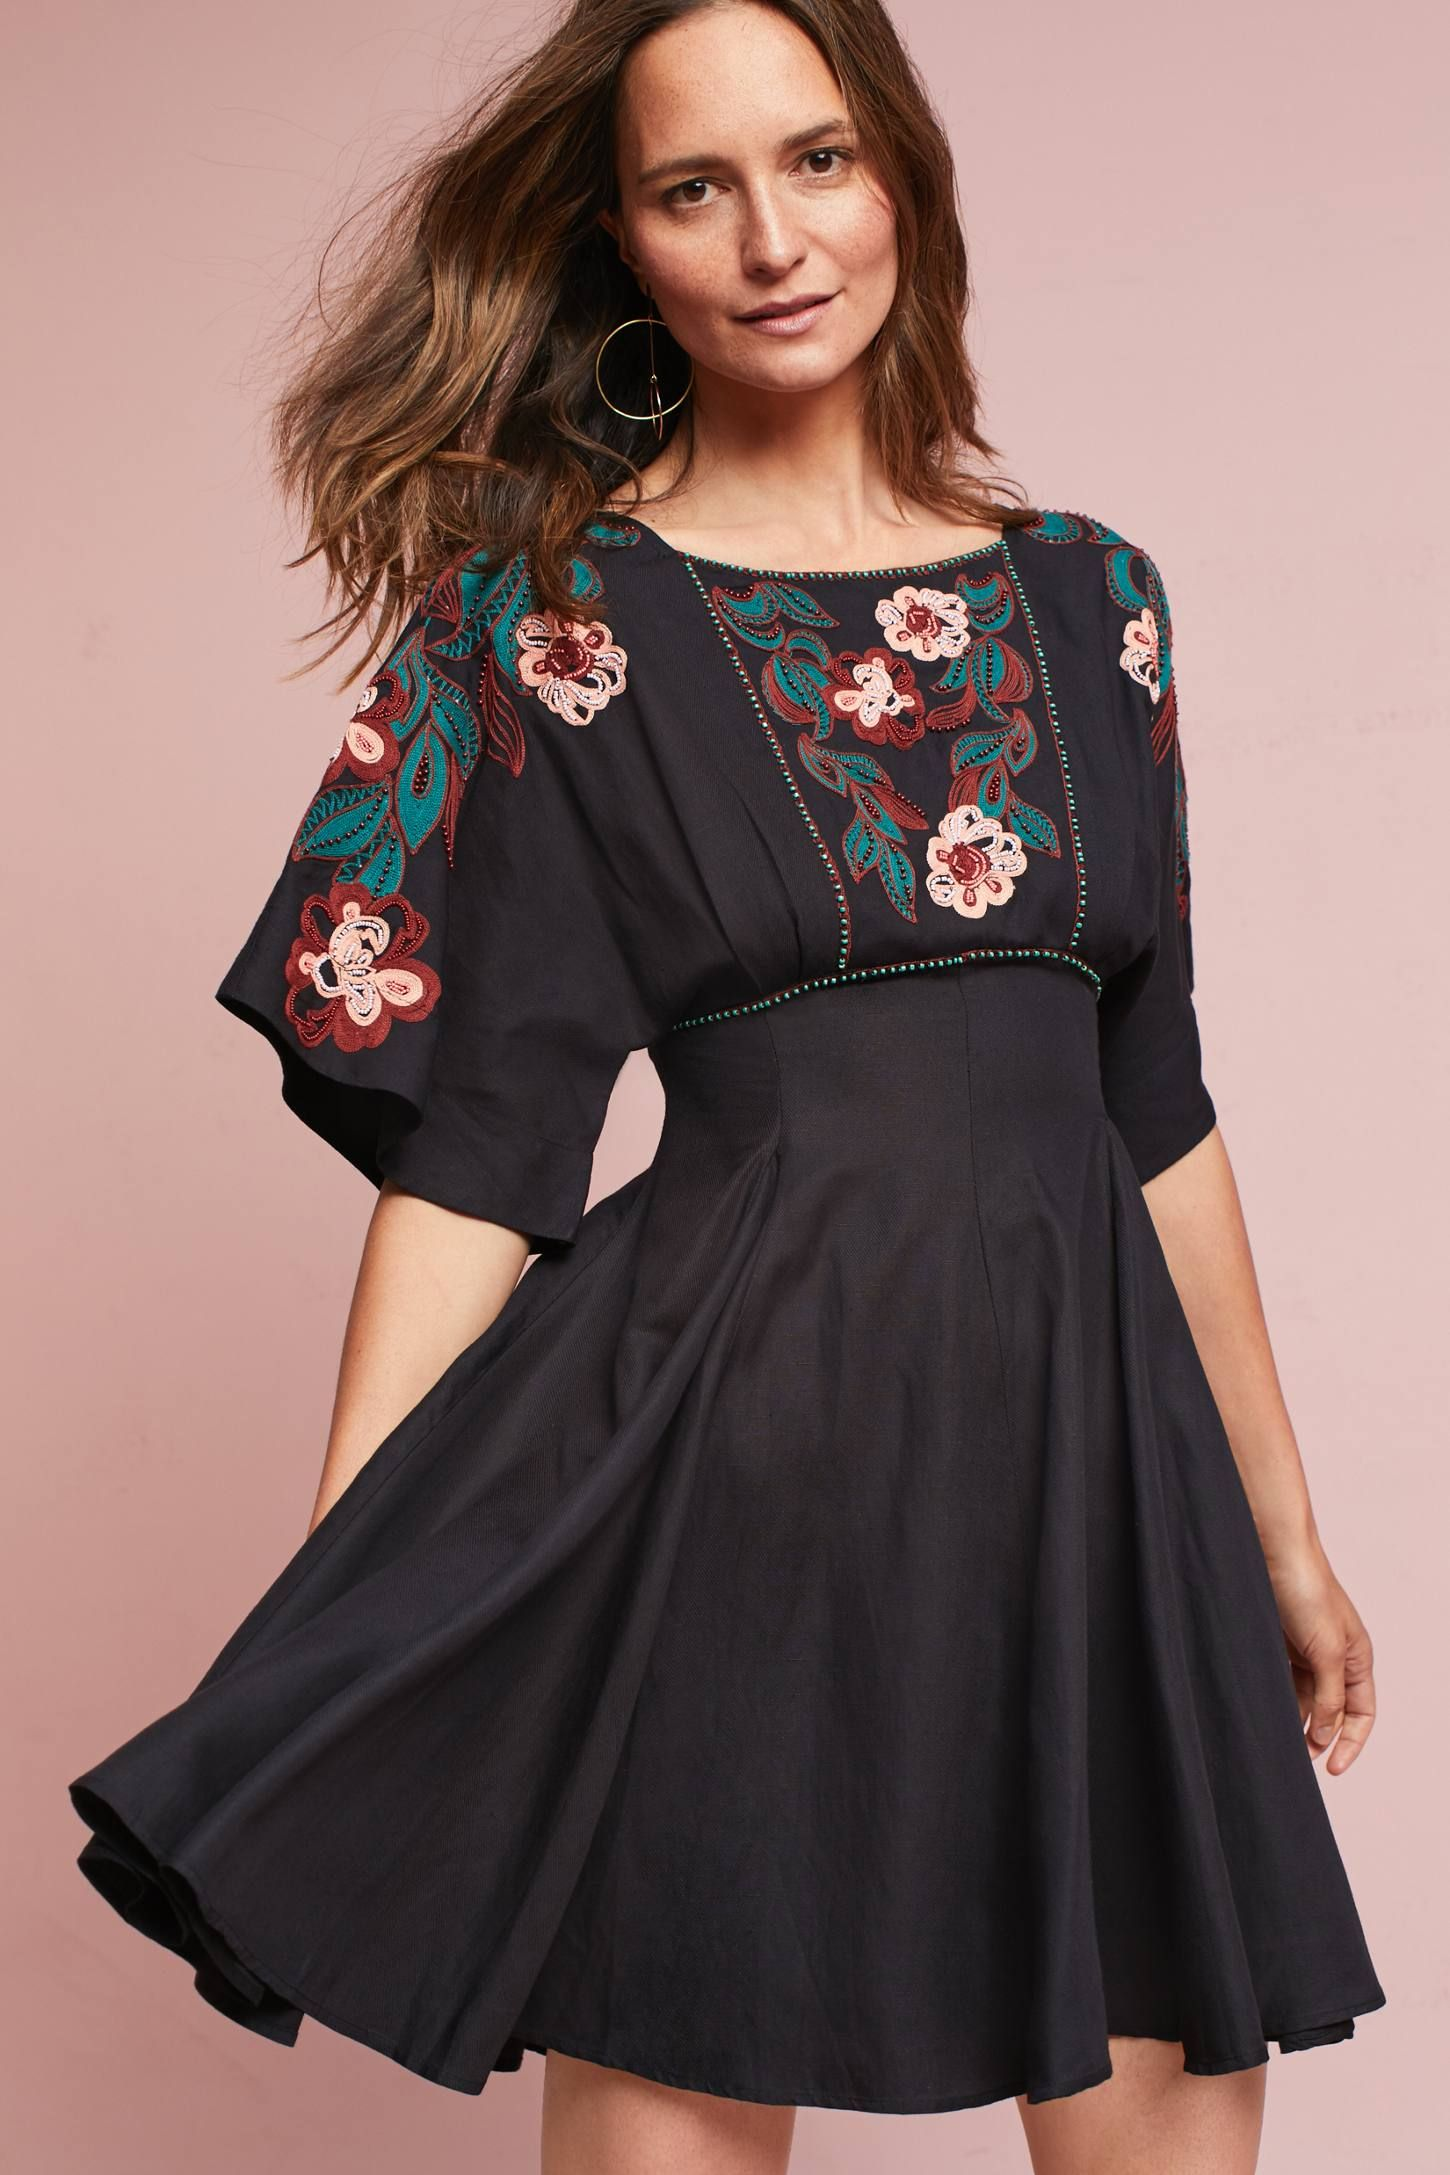 6ac795fa524 Shop the Priscilla Embroidered Dress and more Anthropologie at  Anthropologie today. Read customer reviews